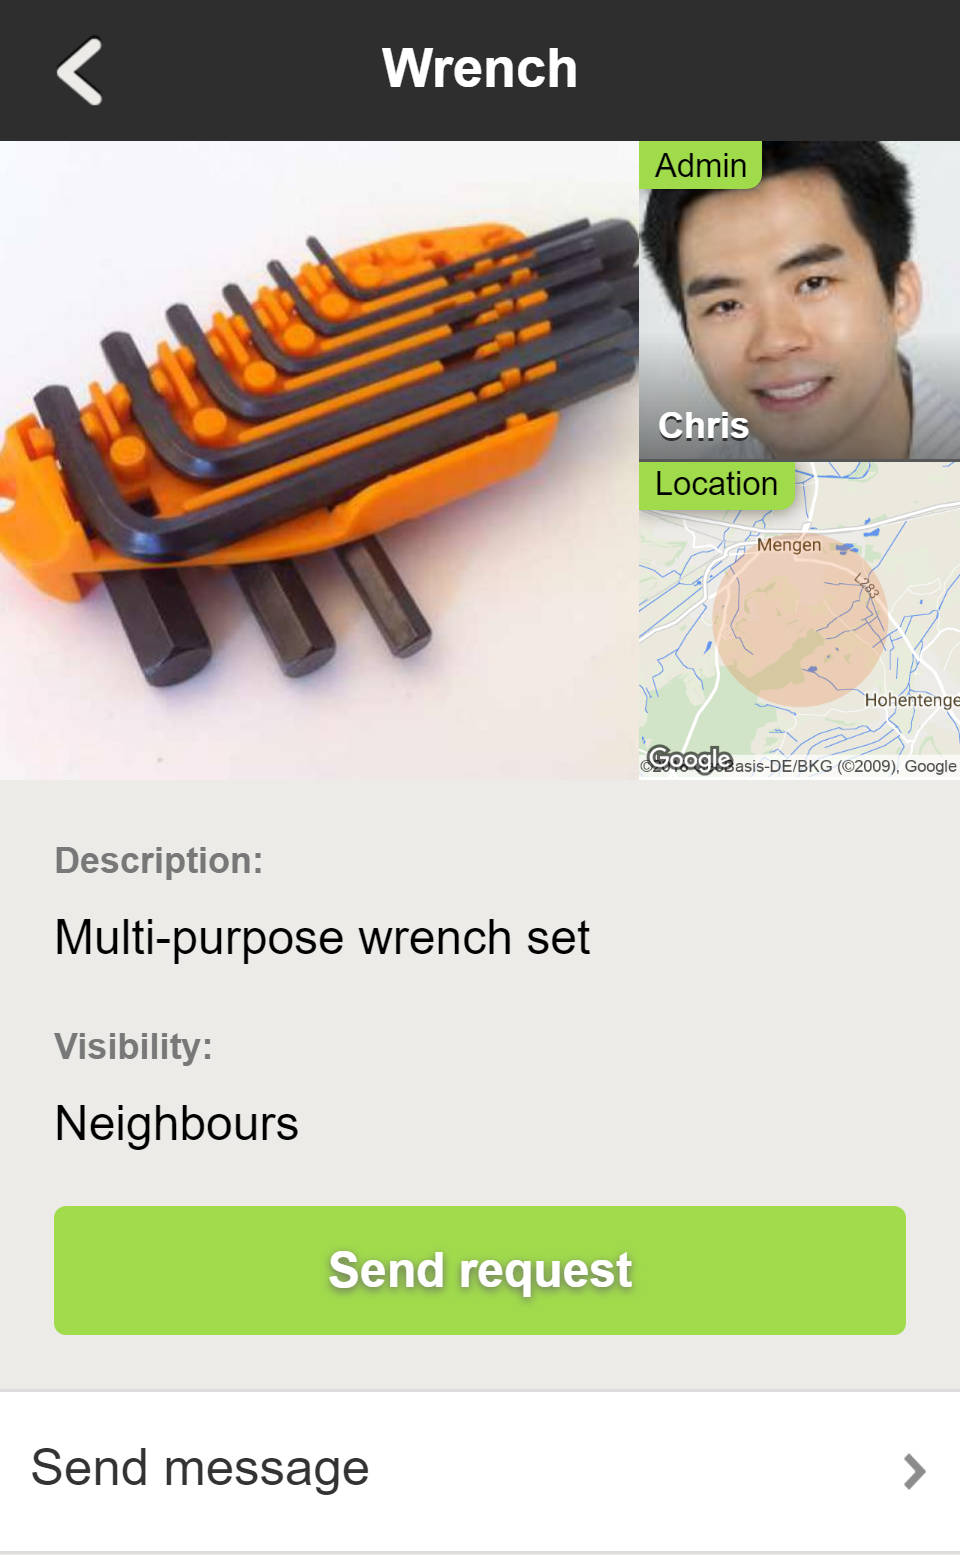 Share with Neighbors - The Item Preview in WeeShare